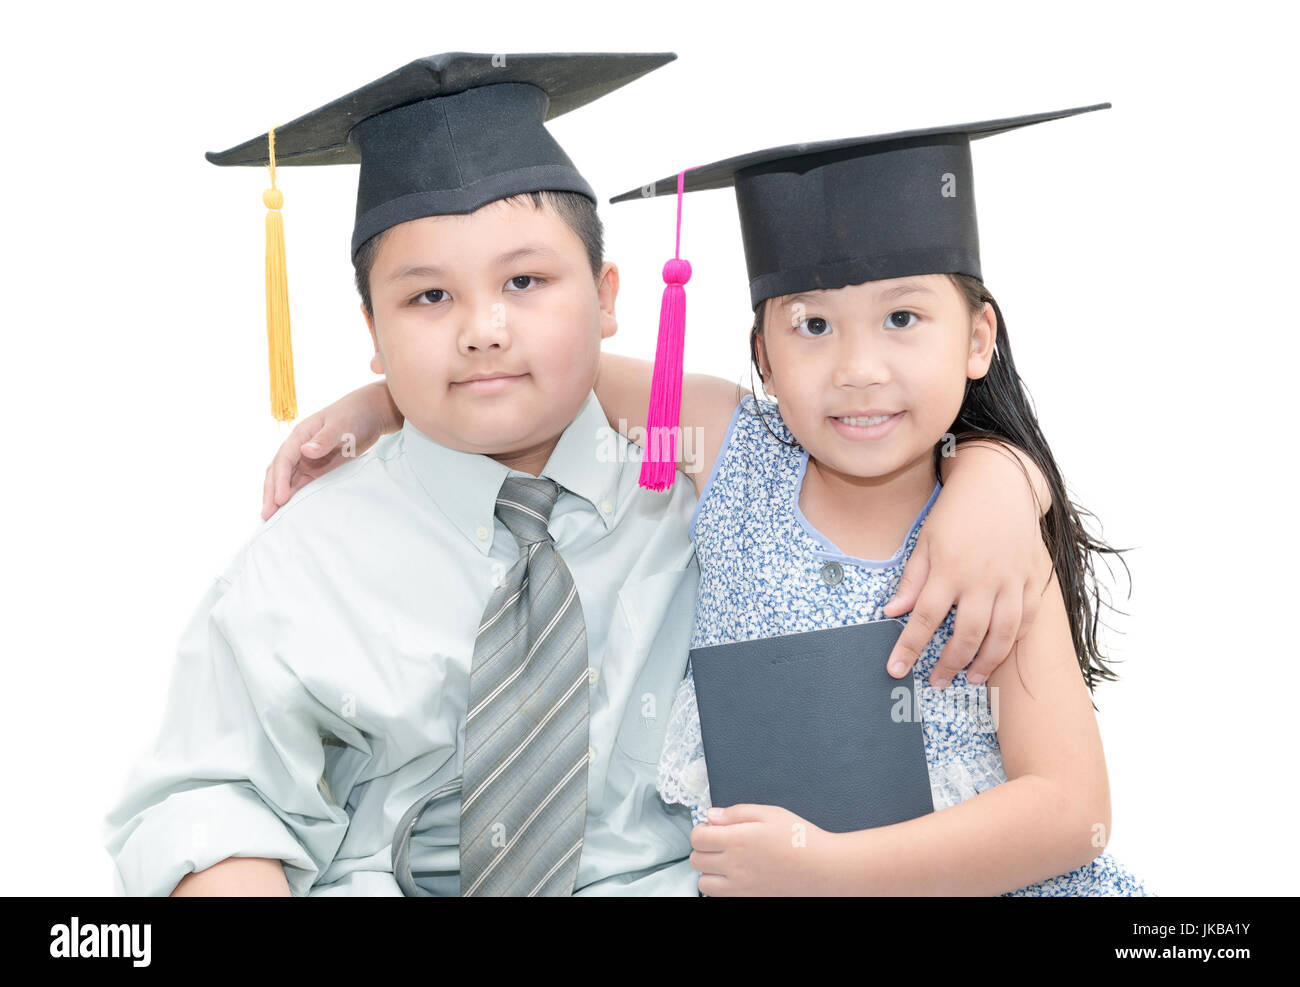 handsome boy and cute girl with graduate cap isolated on white background, education concept - Stock Image